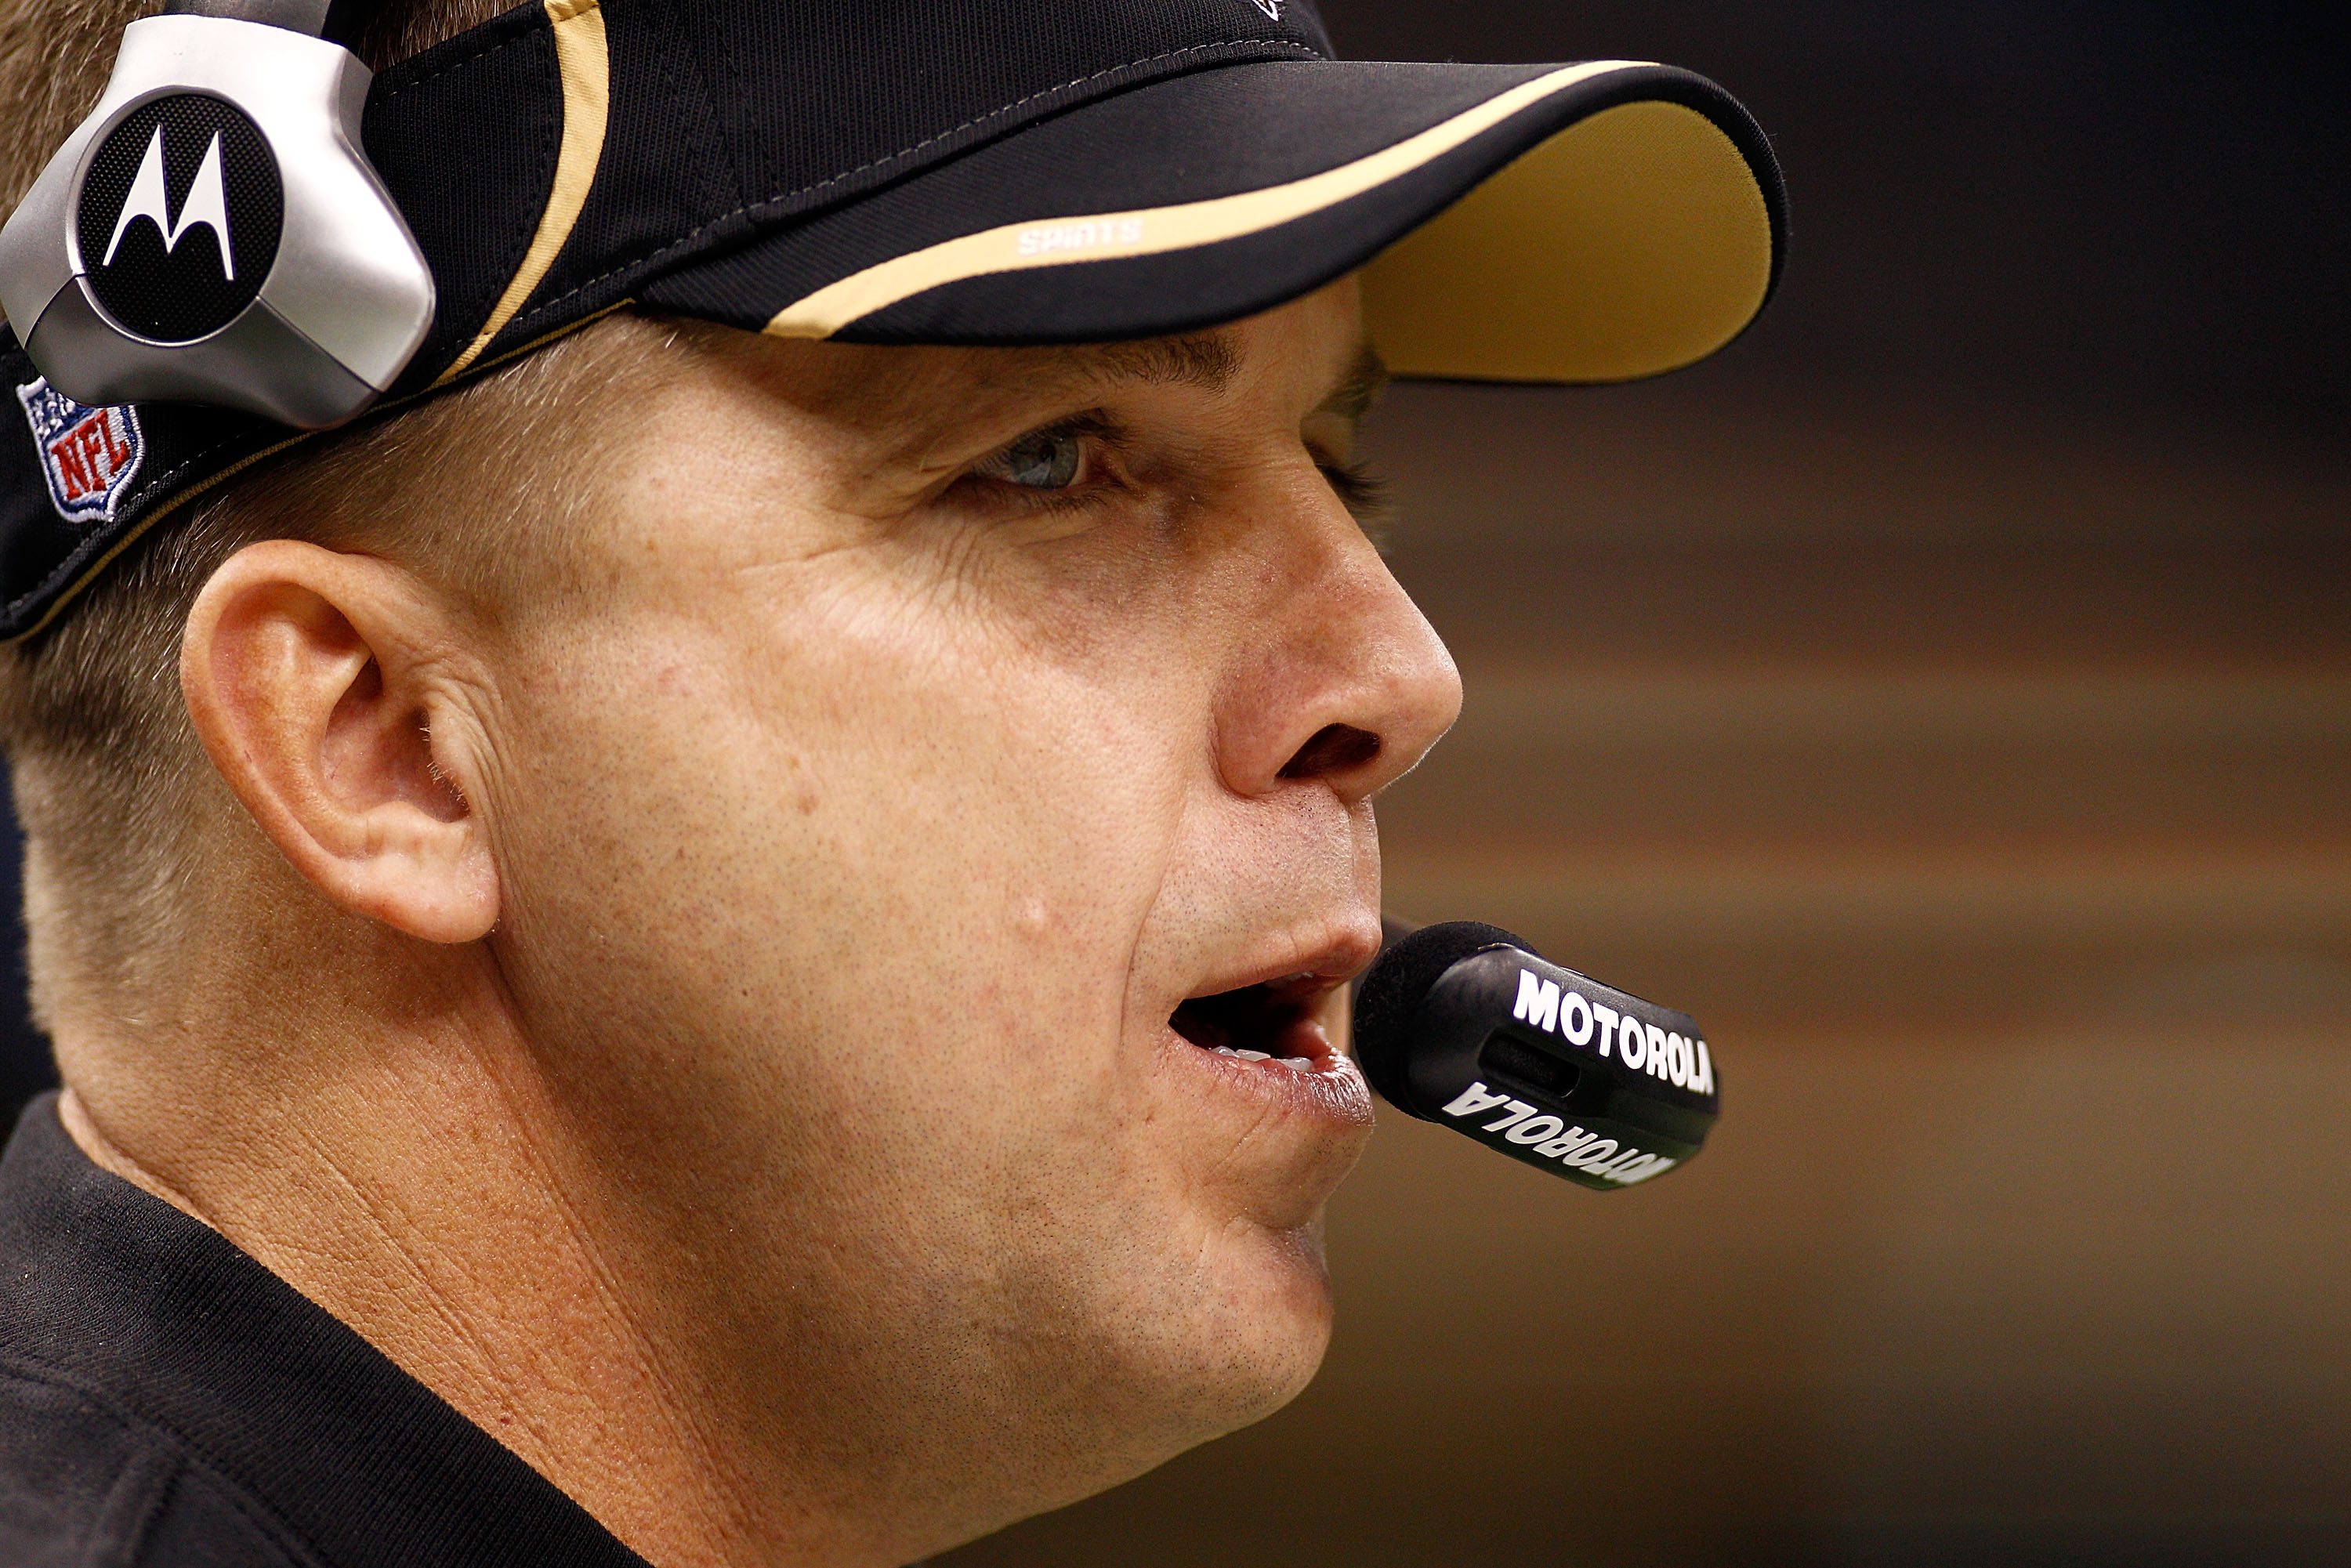 NEW ORLEANS, LA - JANUARY 02:  Head coach Sean Payton of the New Orleans Saints watches a play during the game against the Tampa Bay Buccaneers at the Louisiana Superdome on January 2, 2011 in New Orleans, Louisiana.  The Buccaneers defeated the Saints 23